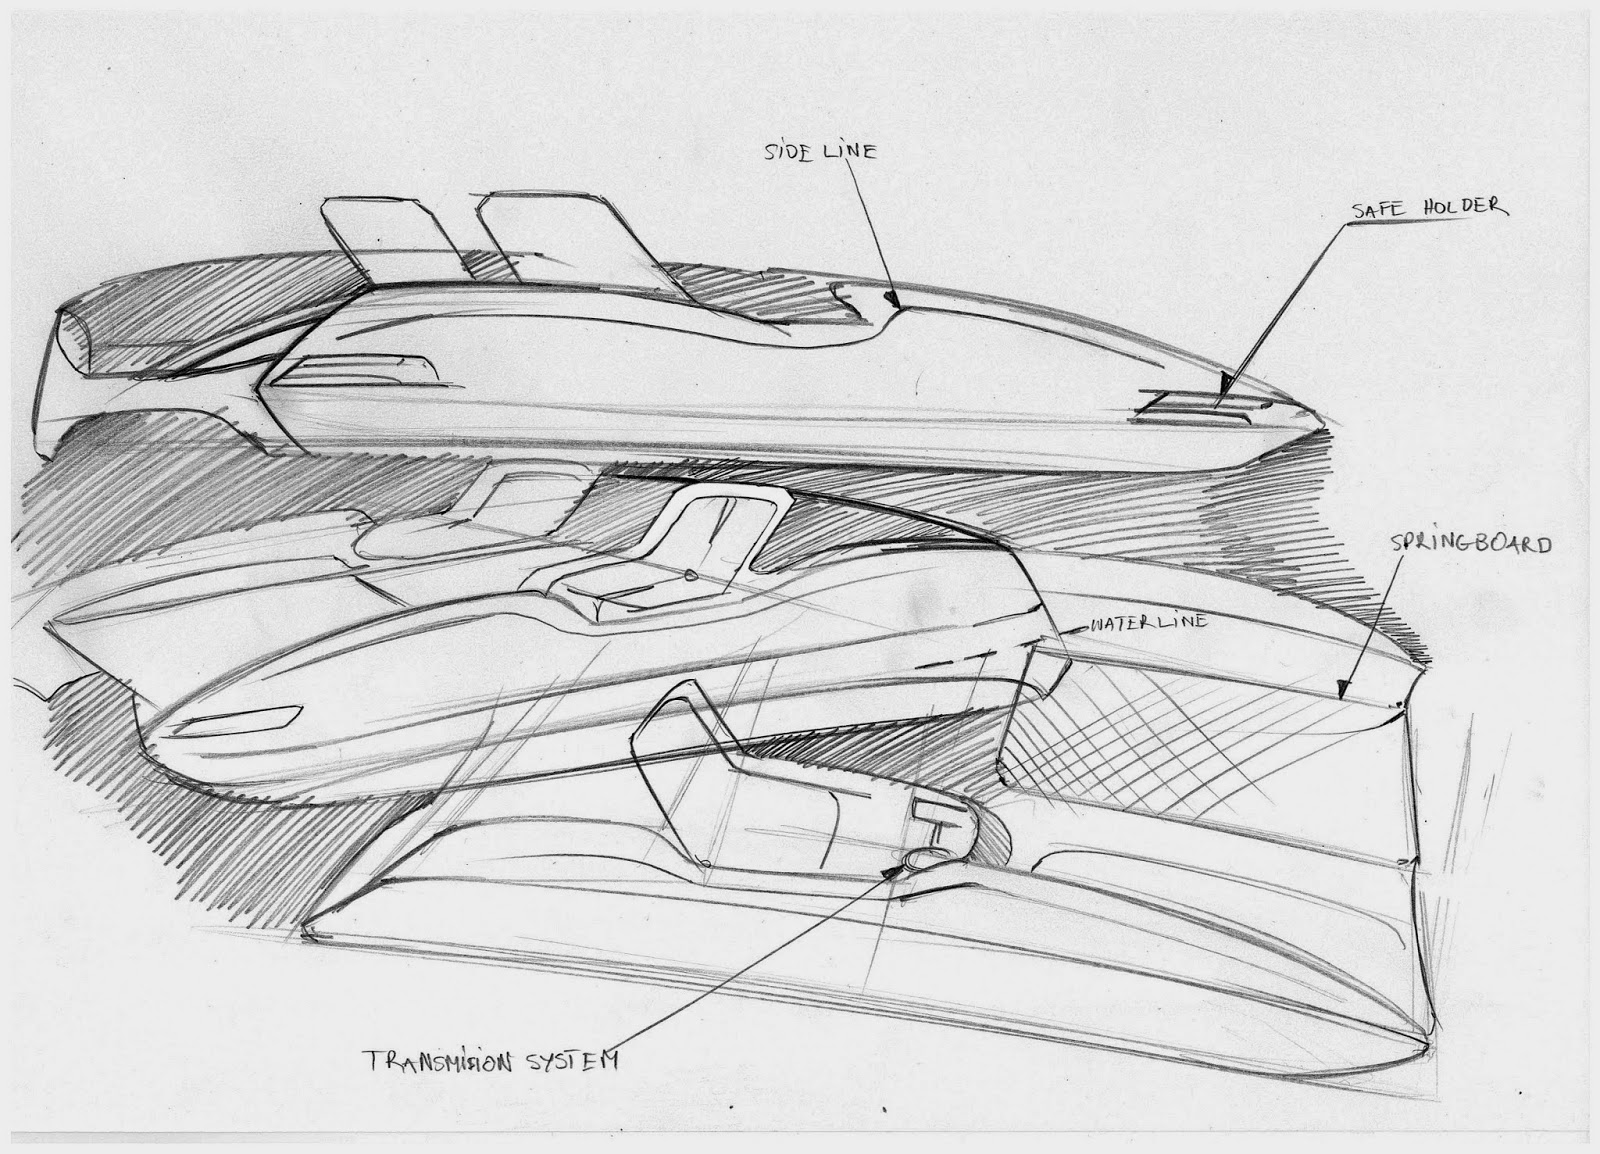 car design sketches and drawings paddleboat concept